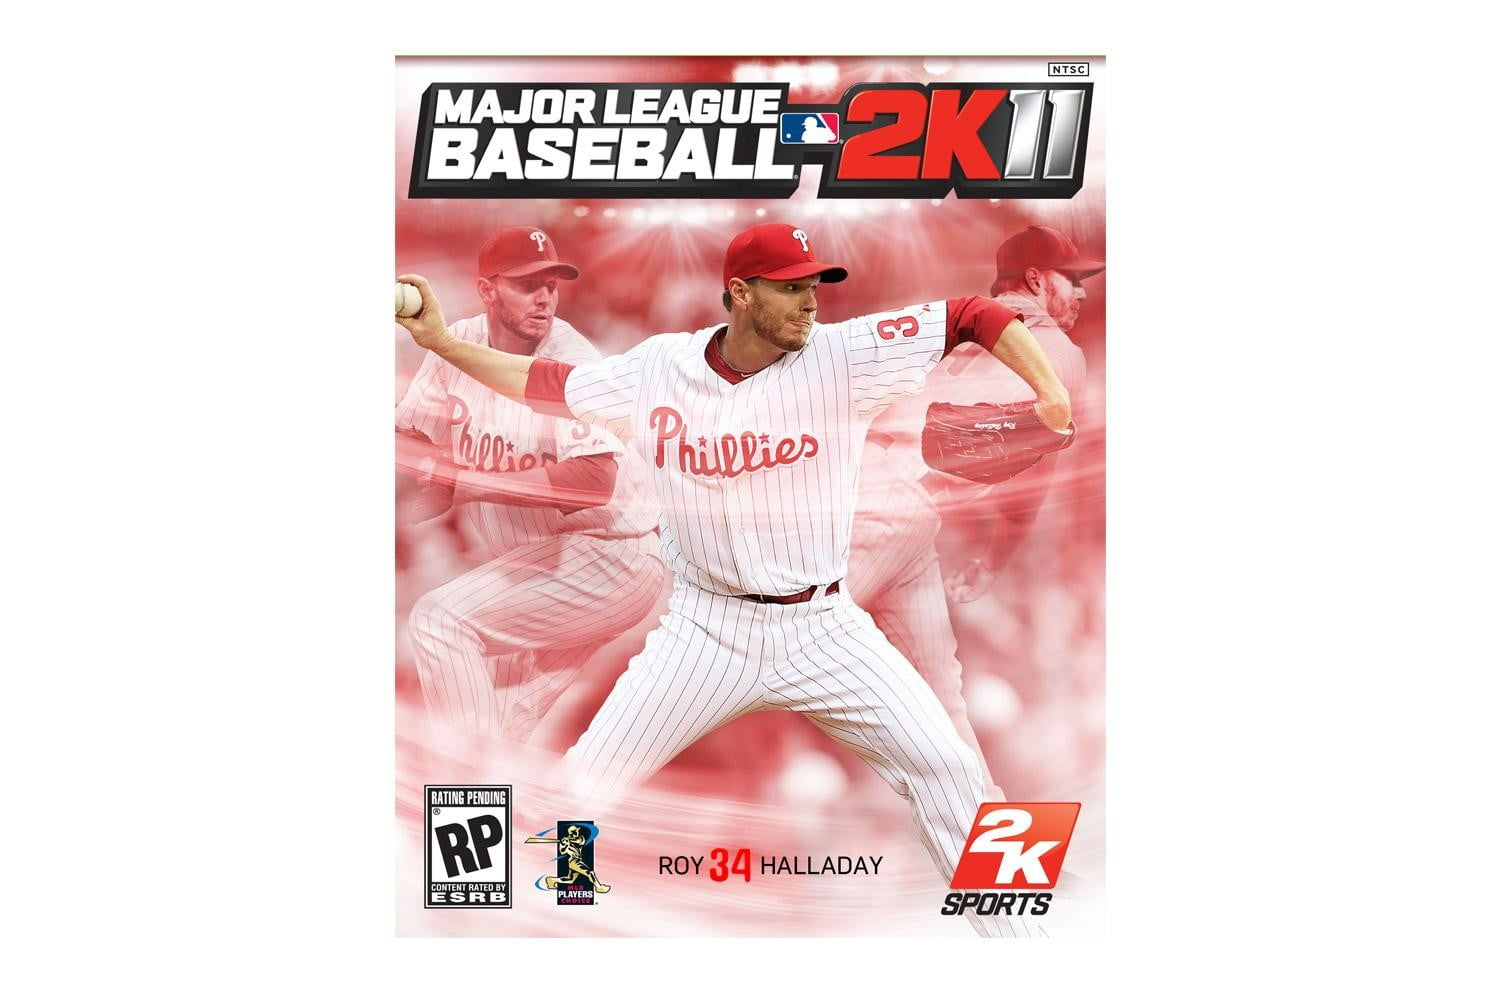 MLB-2k11-cover-art